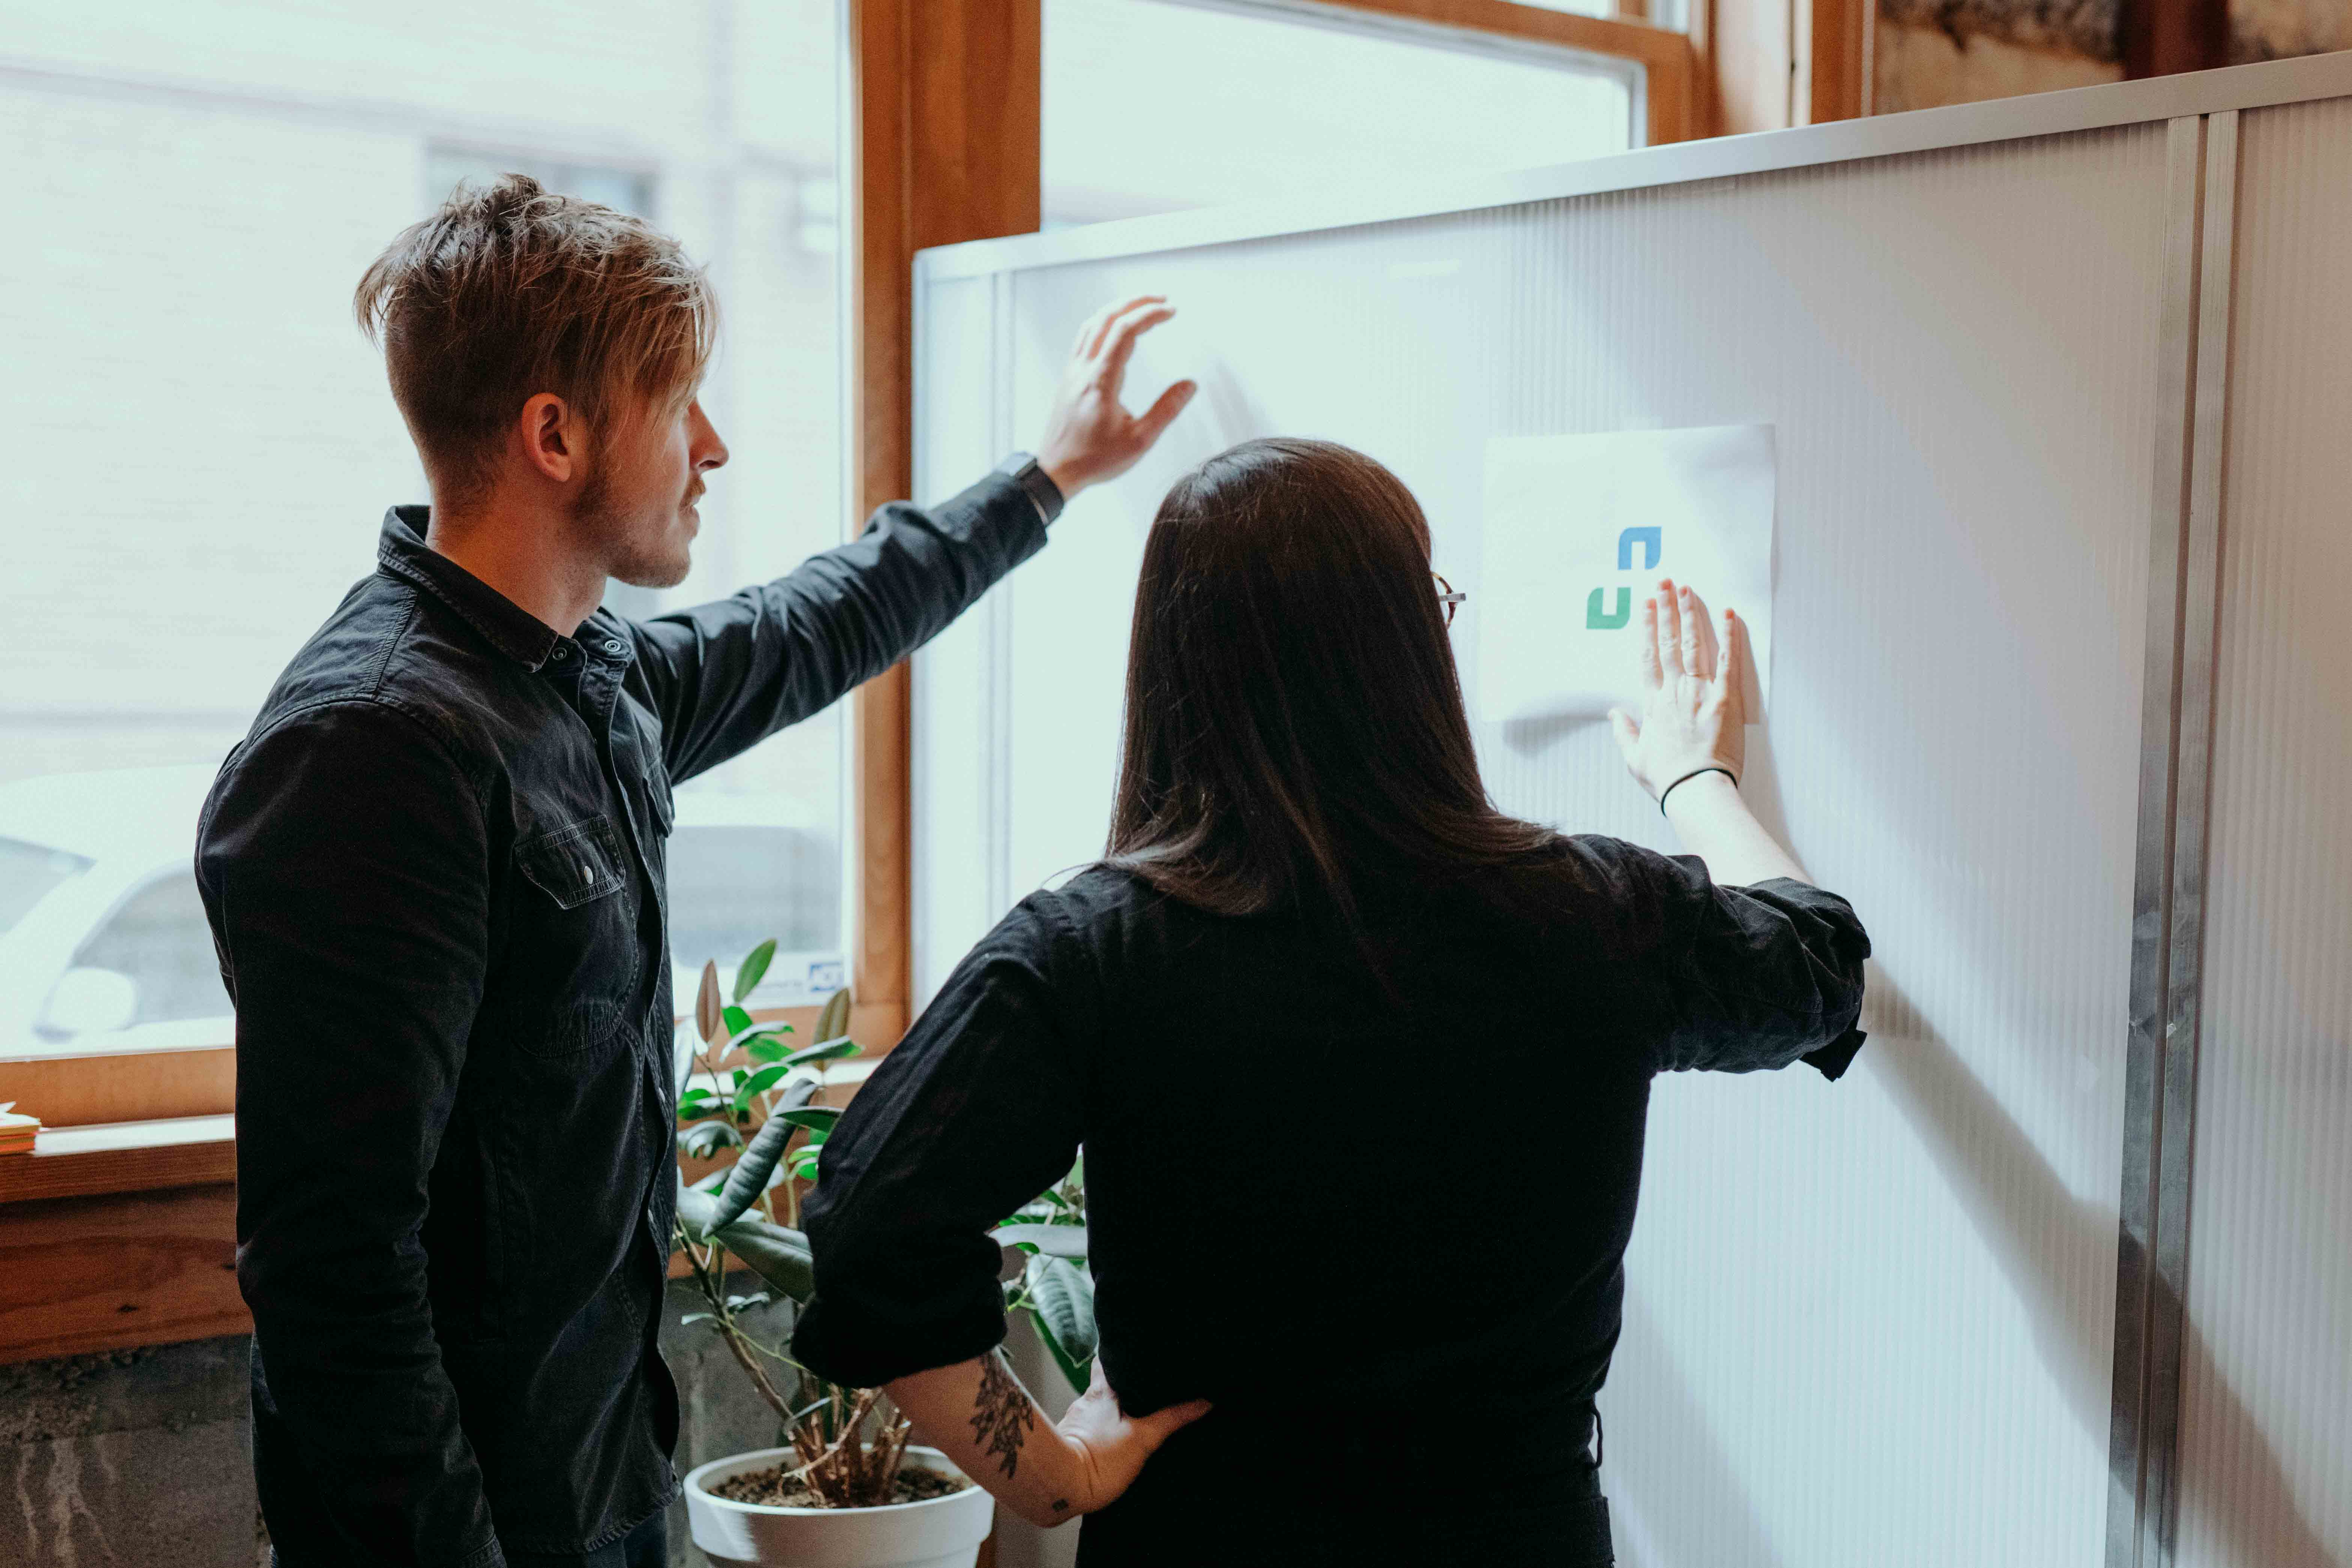 Kody Dahl and Katie Cooper, whiteboard employees, brainstorm in front of a whiteboard.